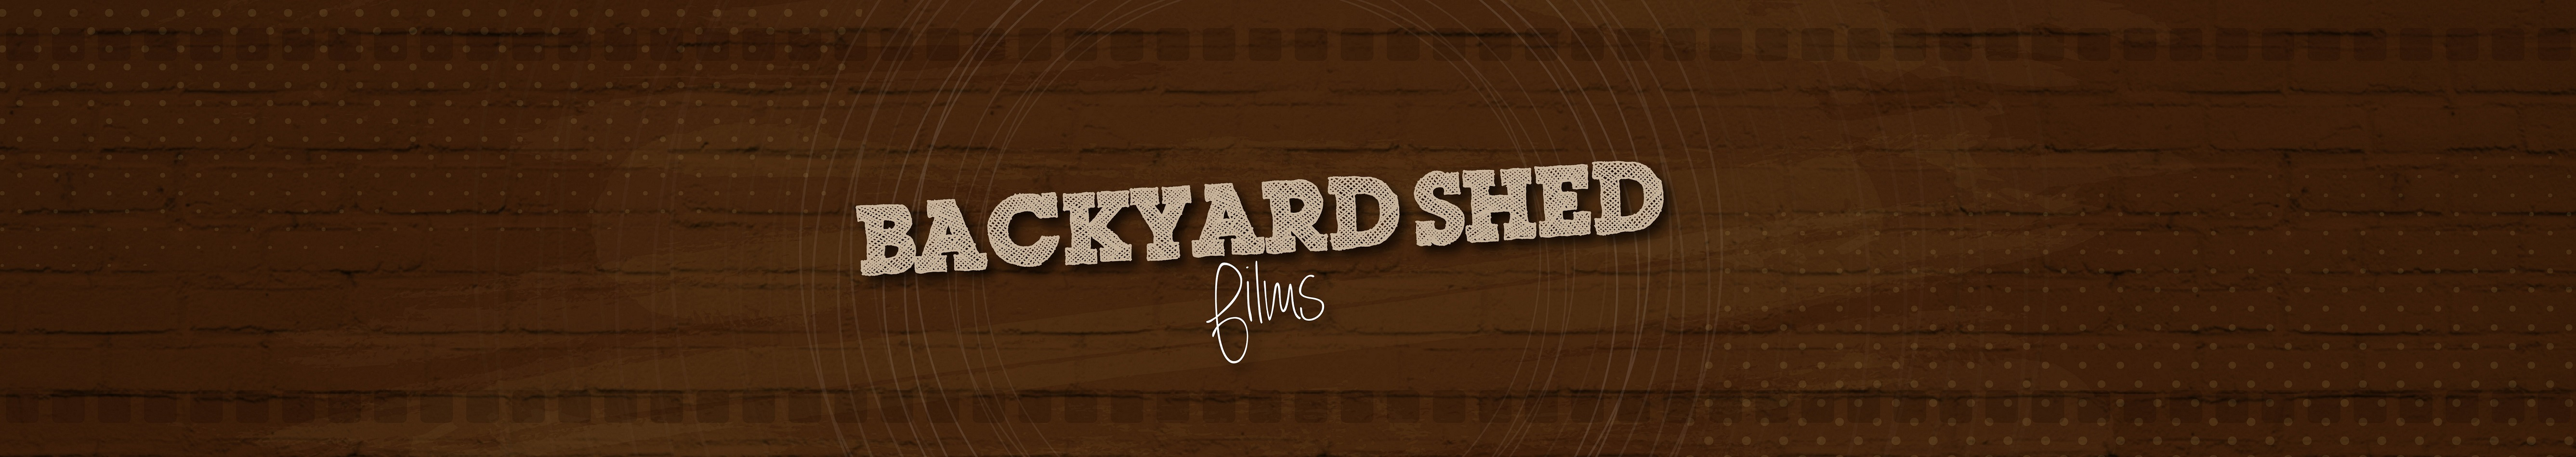 Feature Films | Backyard Shed Films